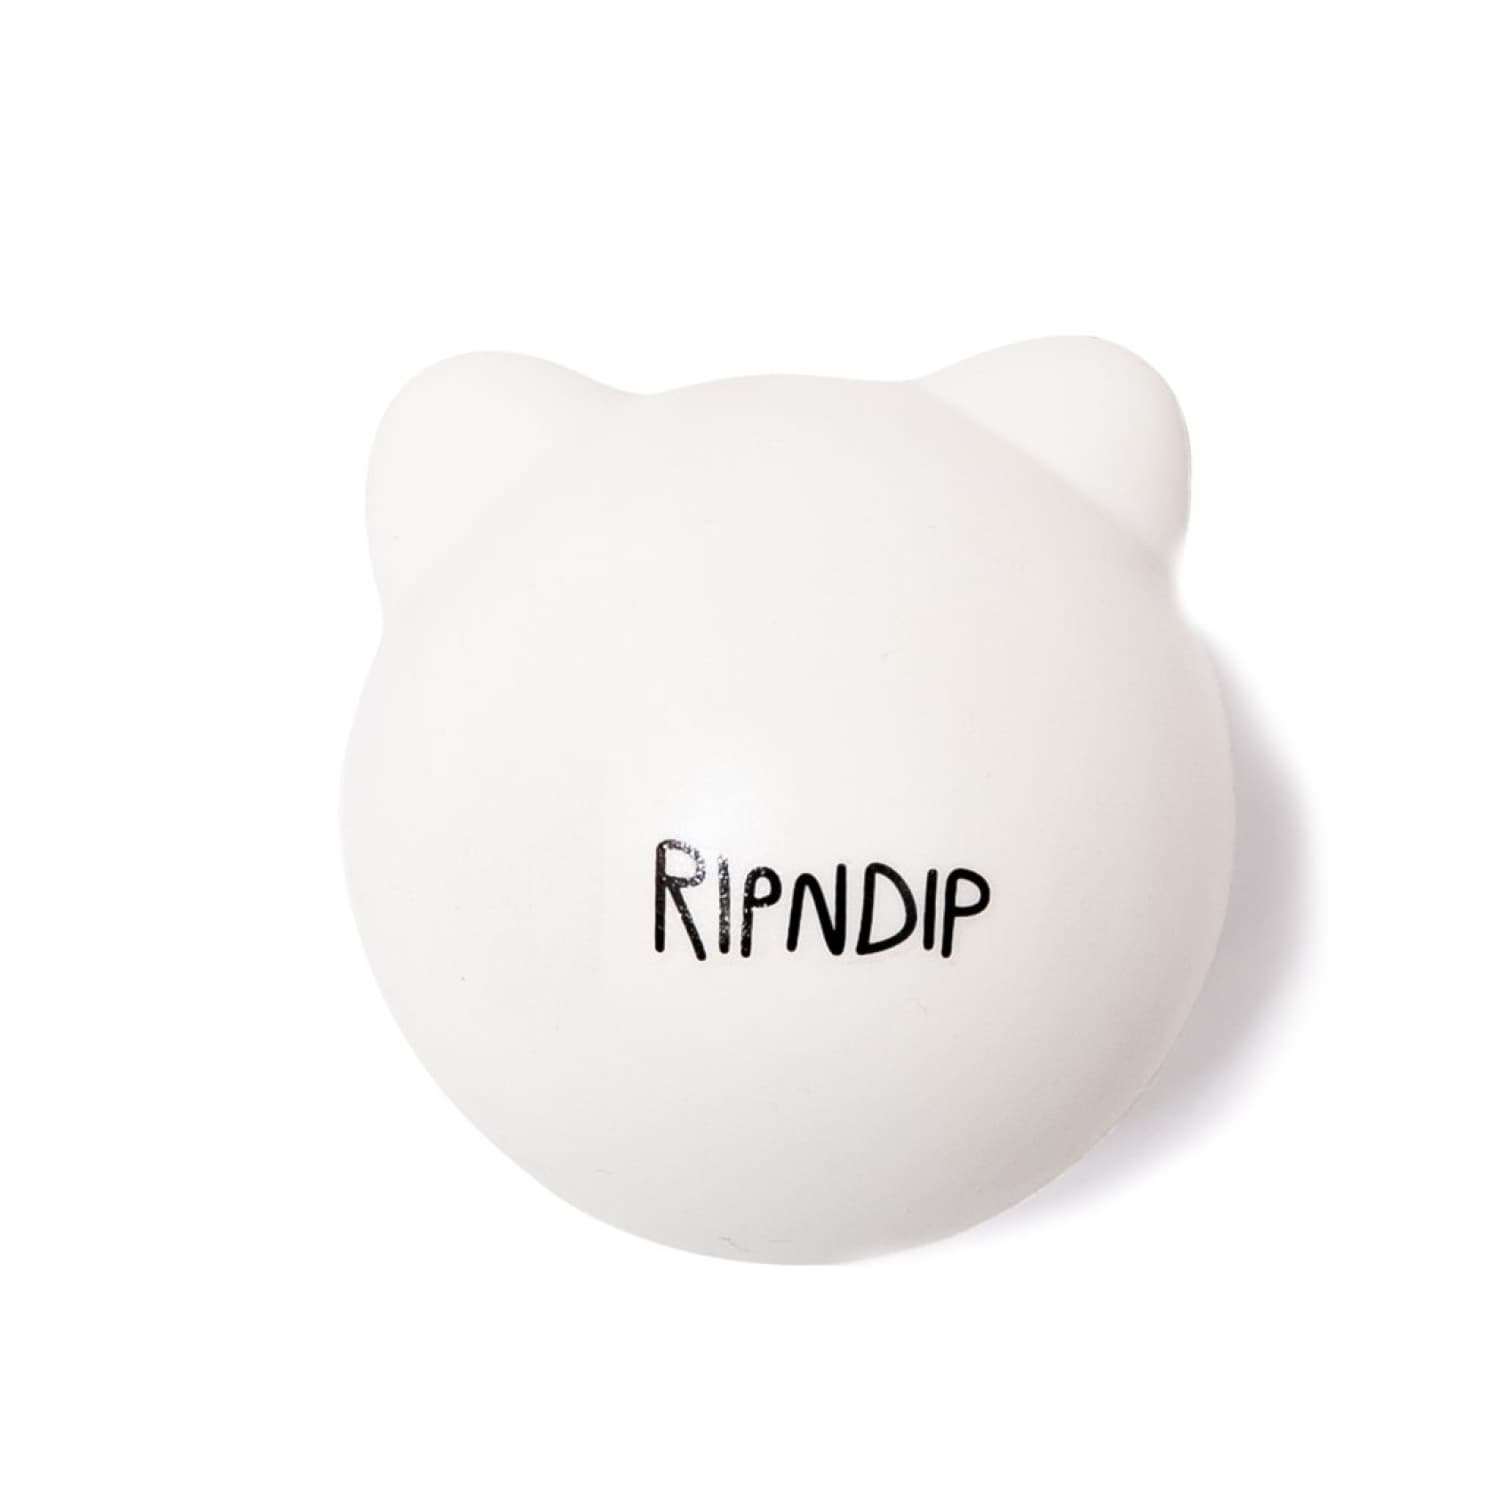 Lord Nermal Stress Ball Ball, Cat, Lord Nermal, Ripndip